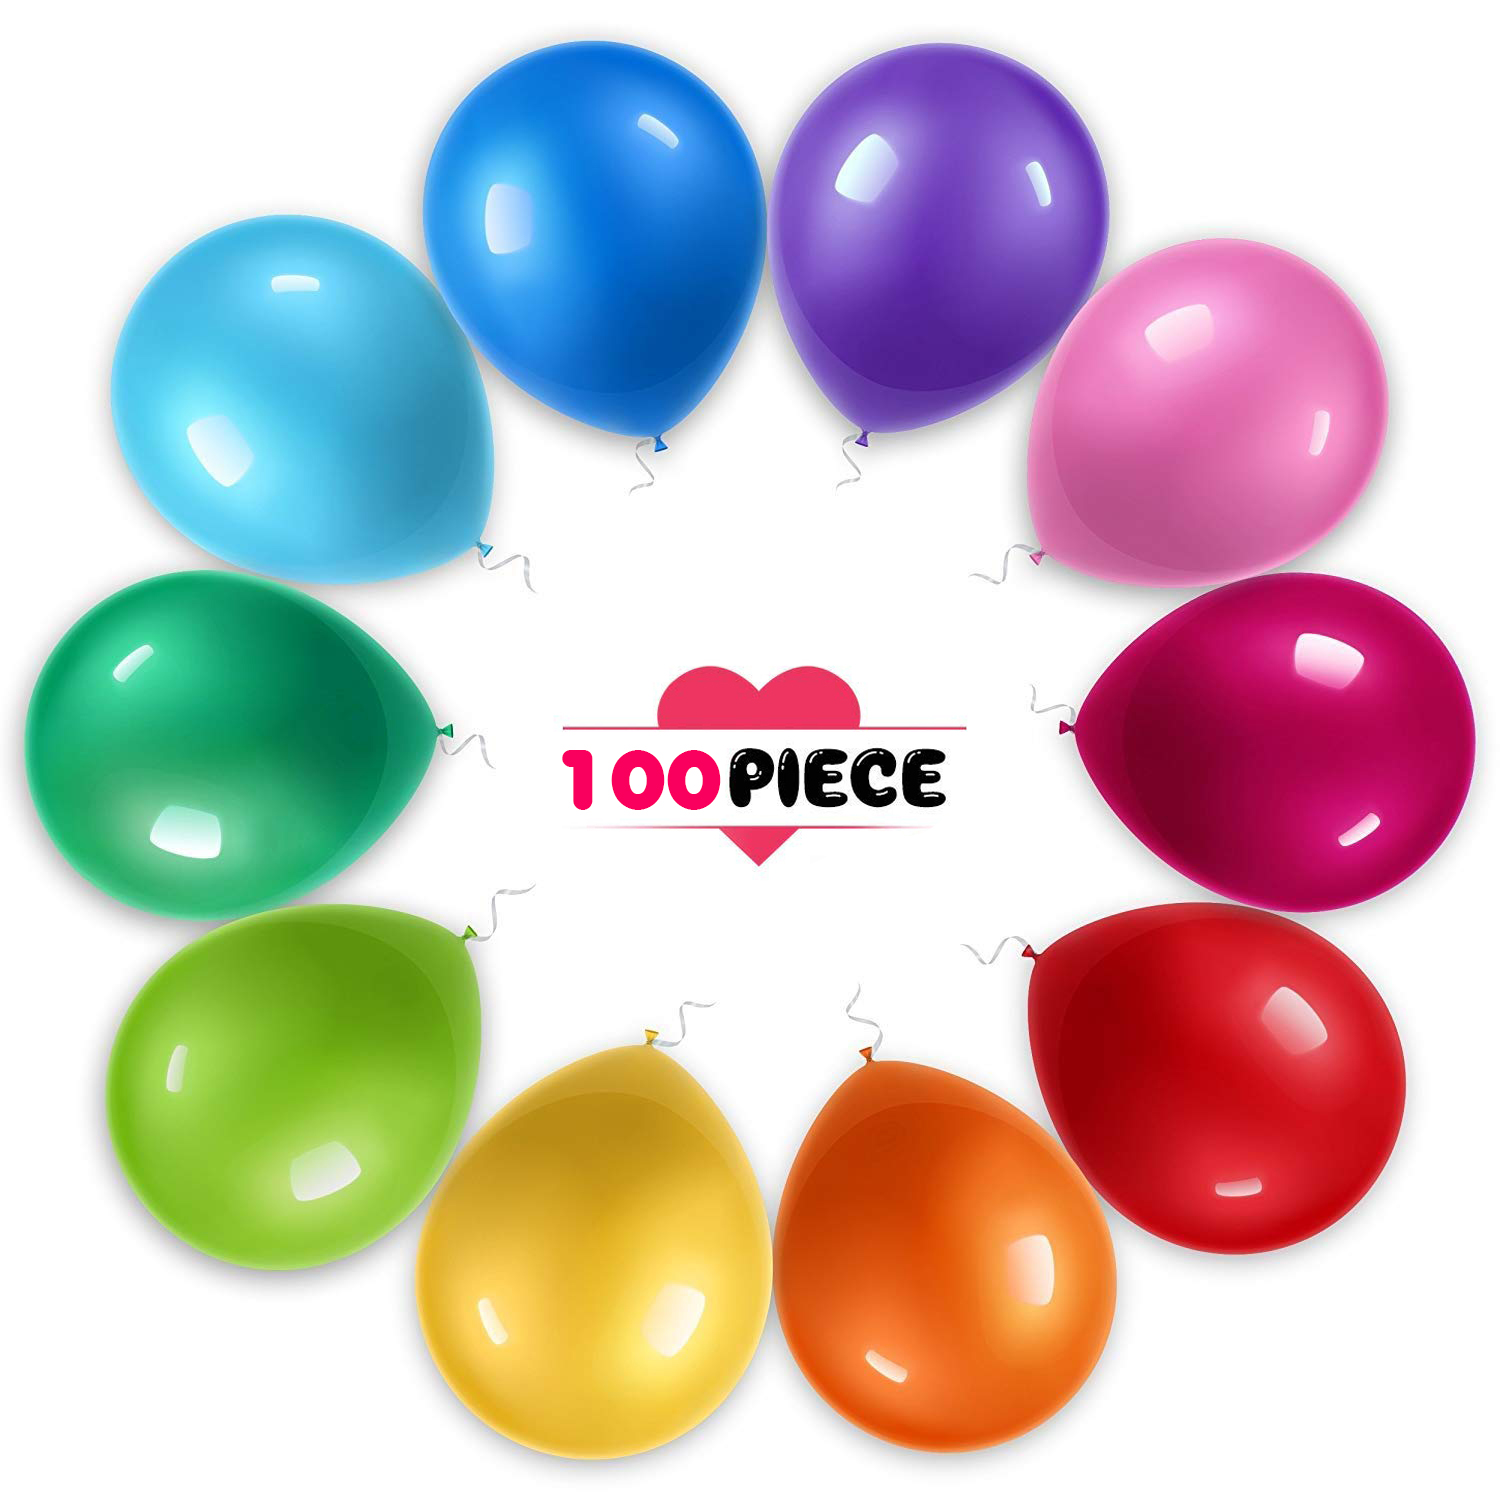 100pcs Party Balloons for Birthday, Graduation, Parties, Weddings, Baby Shower, Decoration